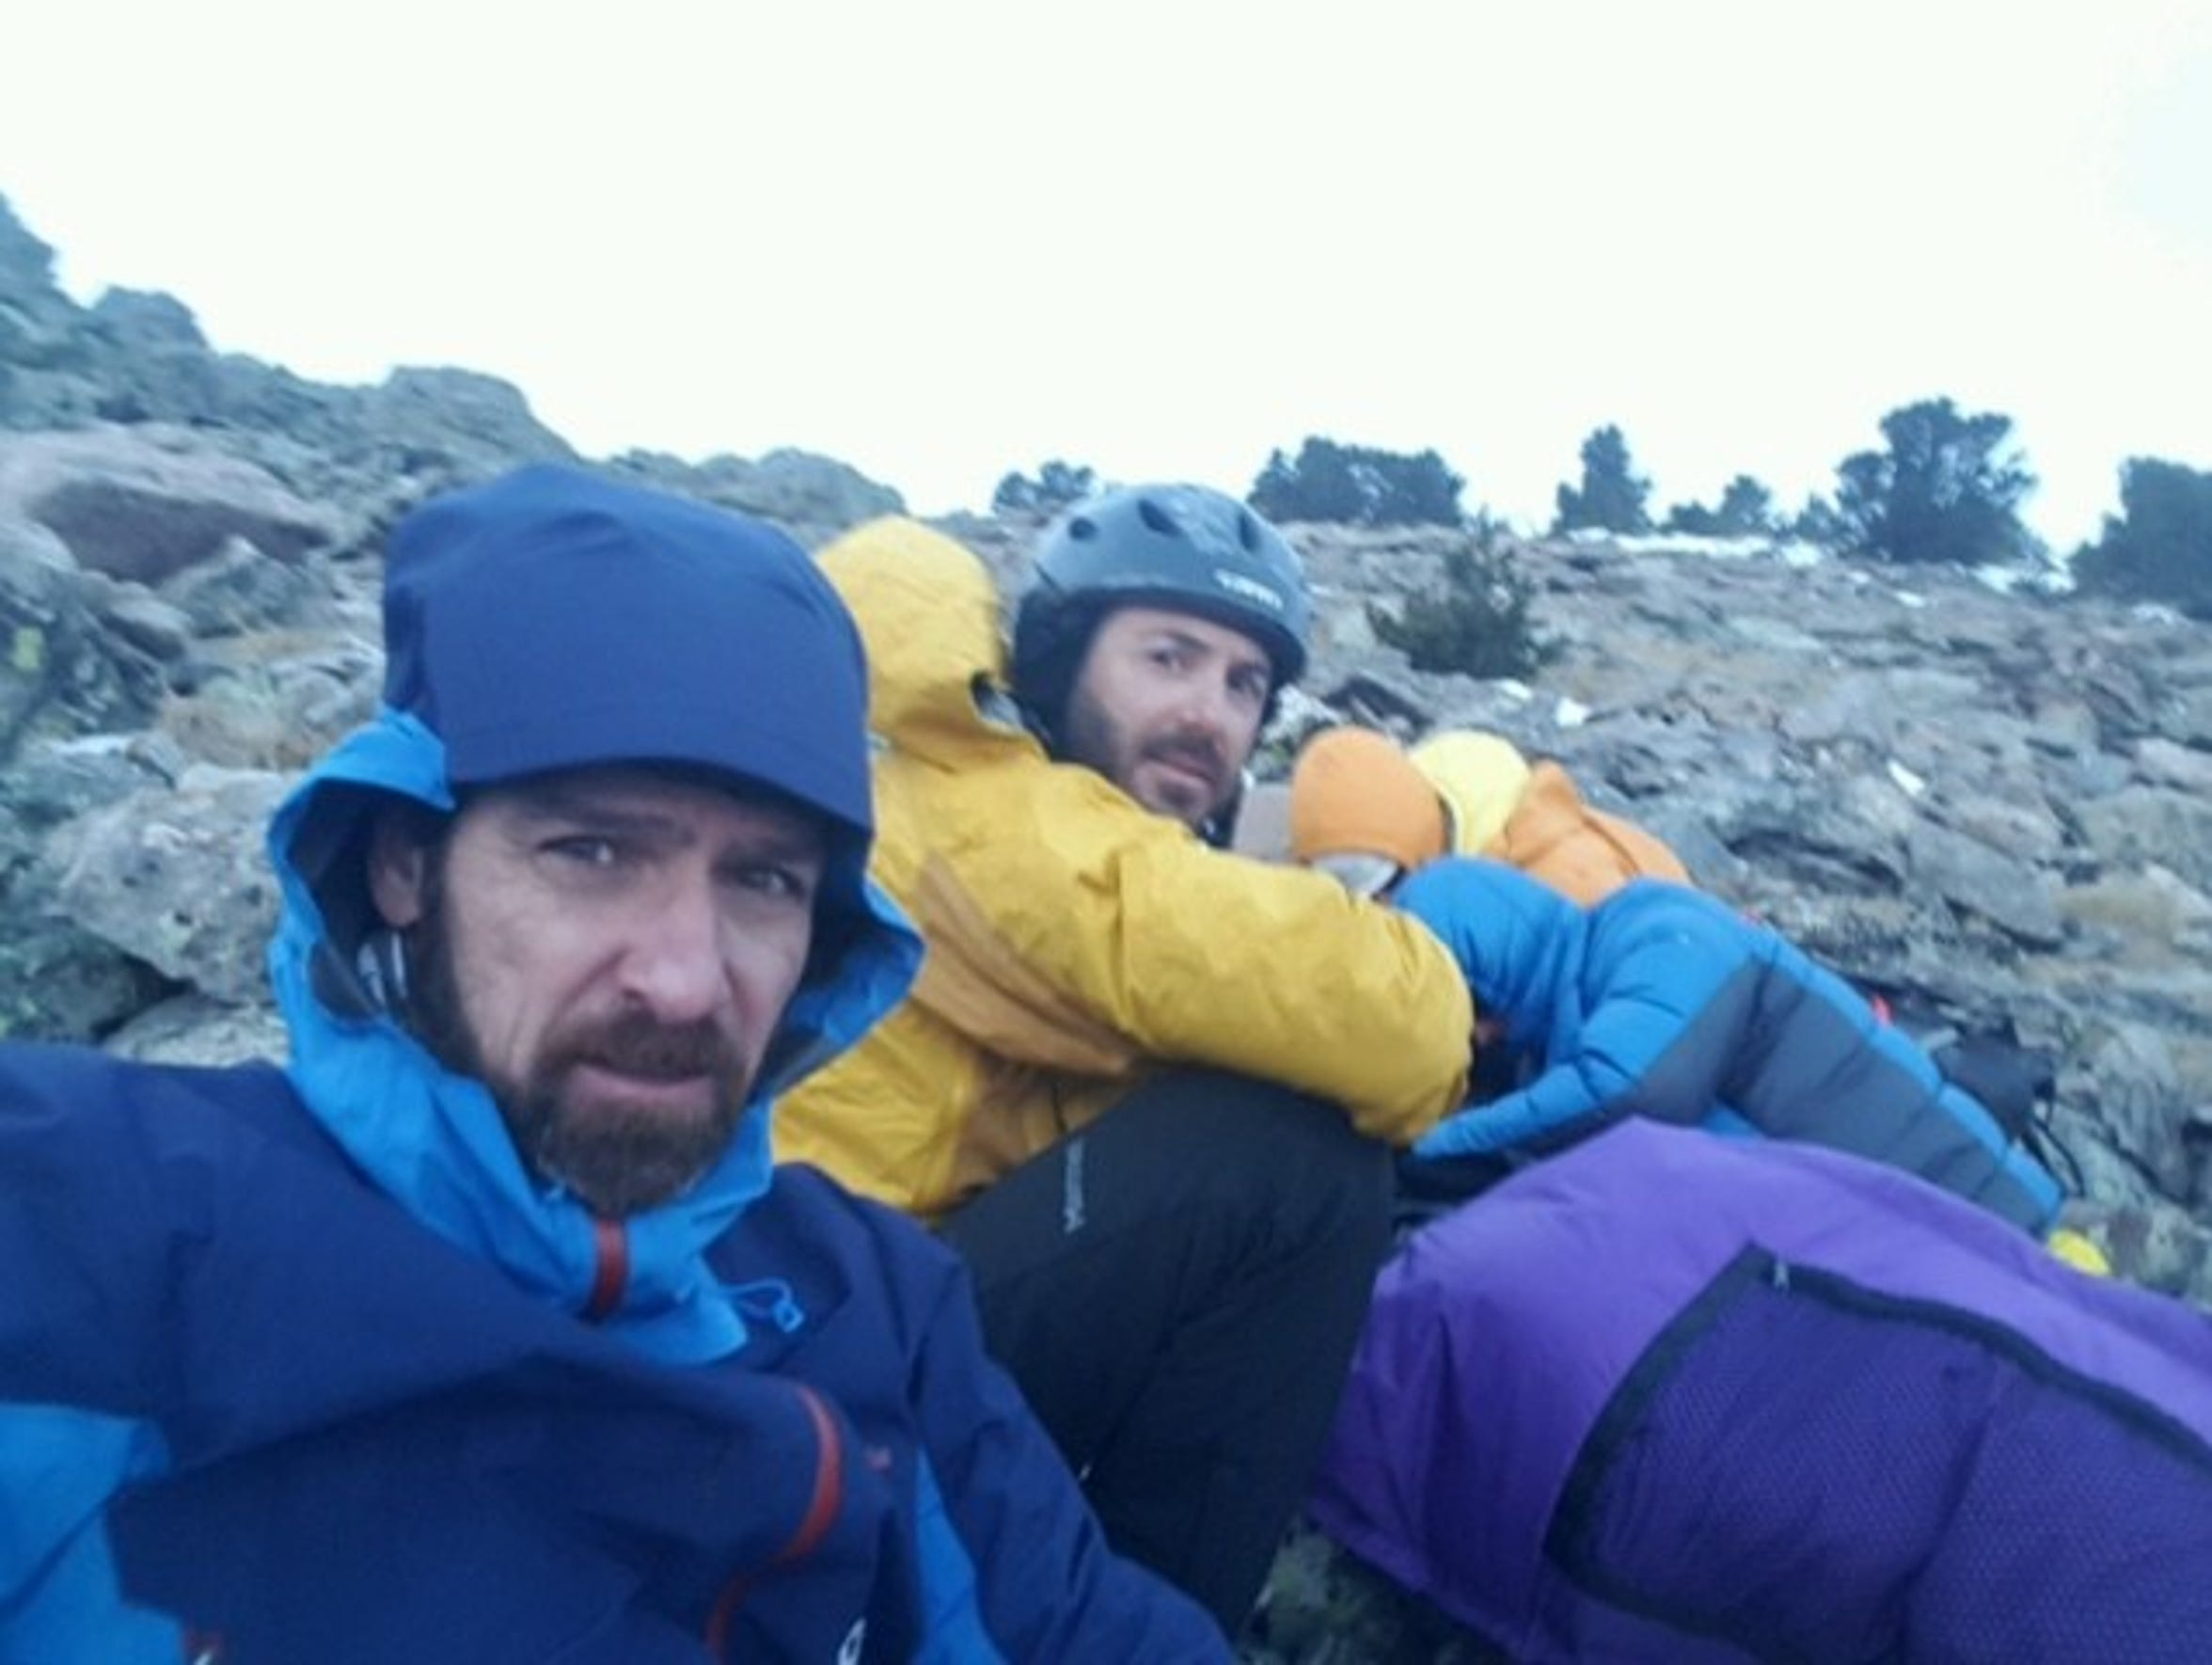 Fort Collins mountaineer Jim Davidson, left, and rescue